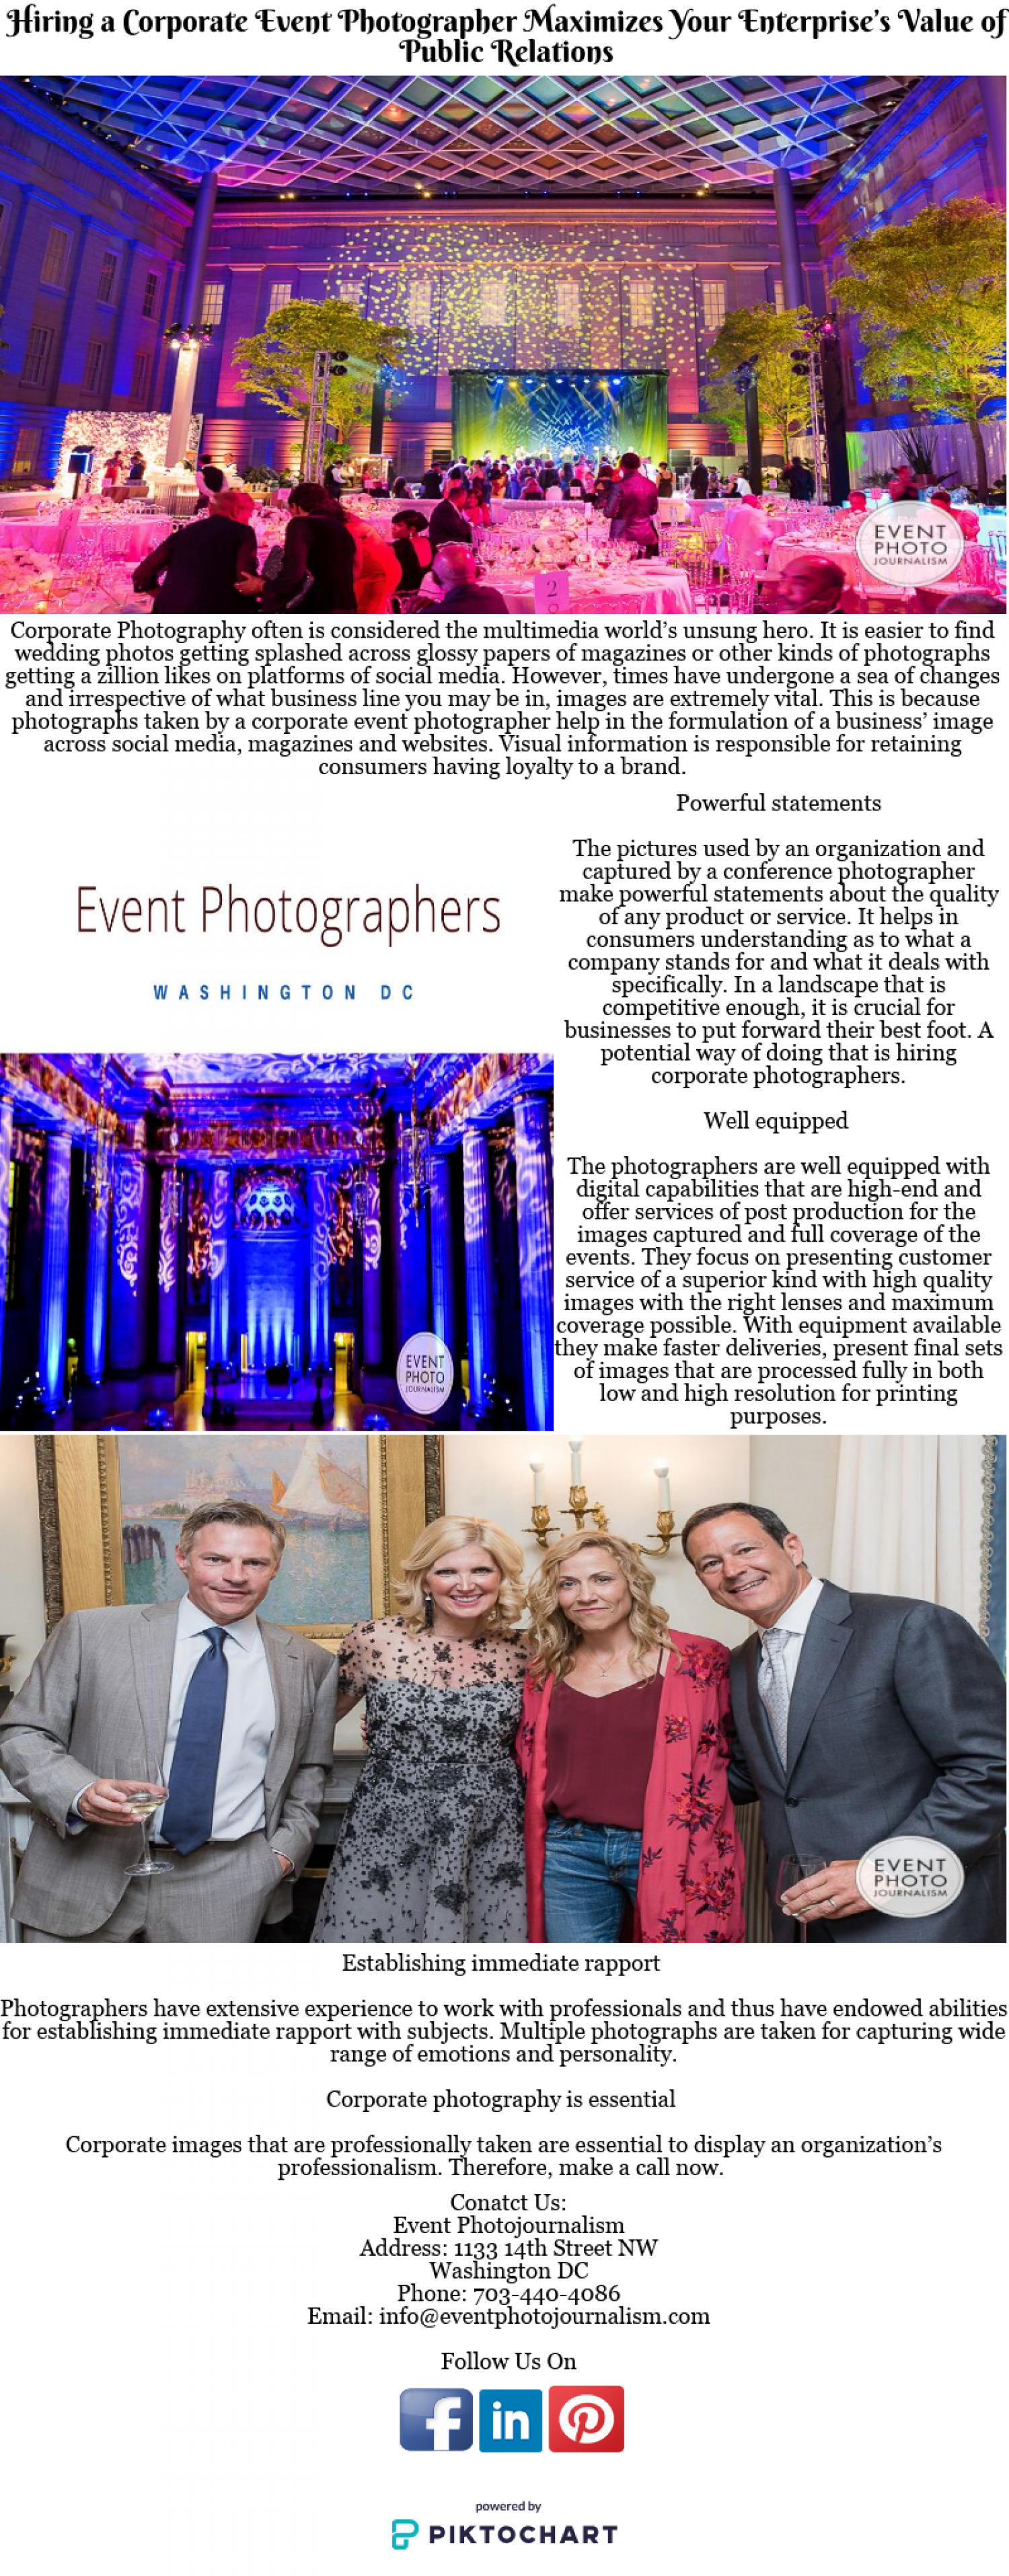 Hiring a Corporate Event Photographer Maximizes Your Enterprise's Value of Public Relations Infographic